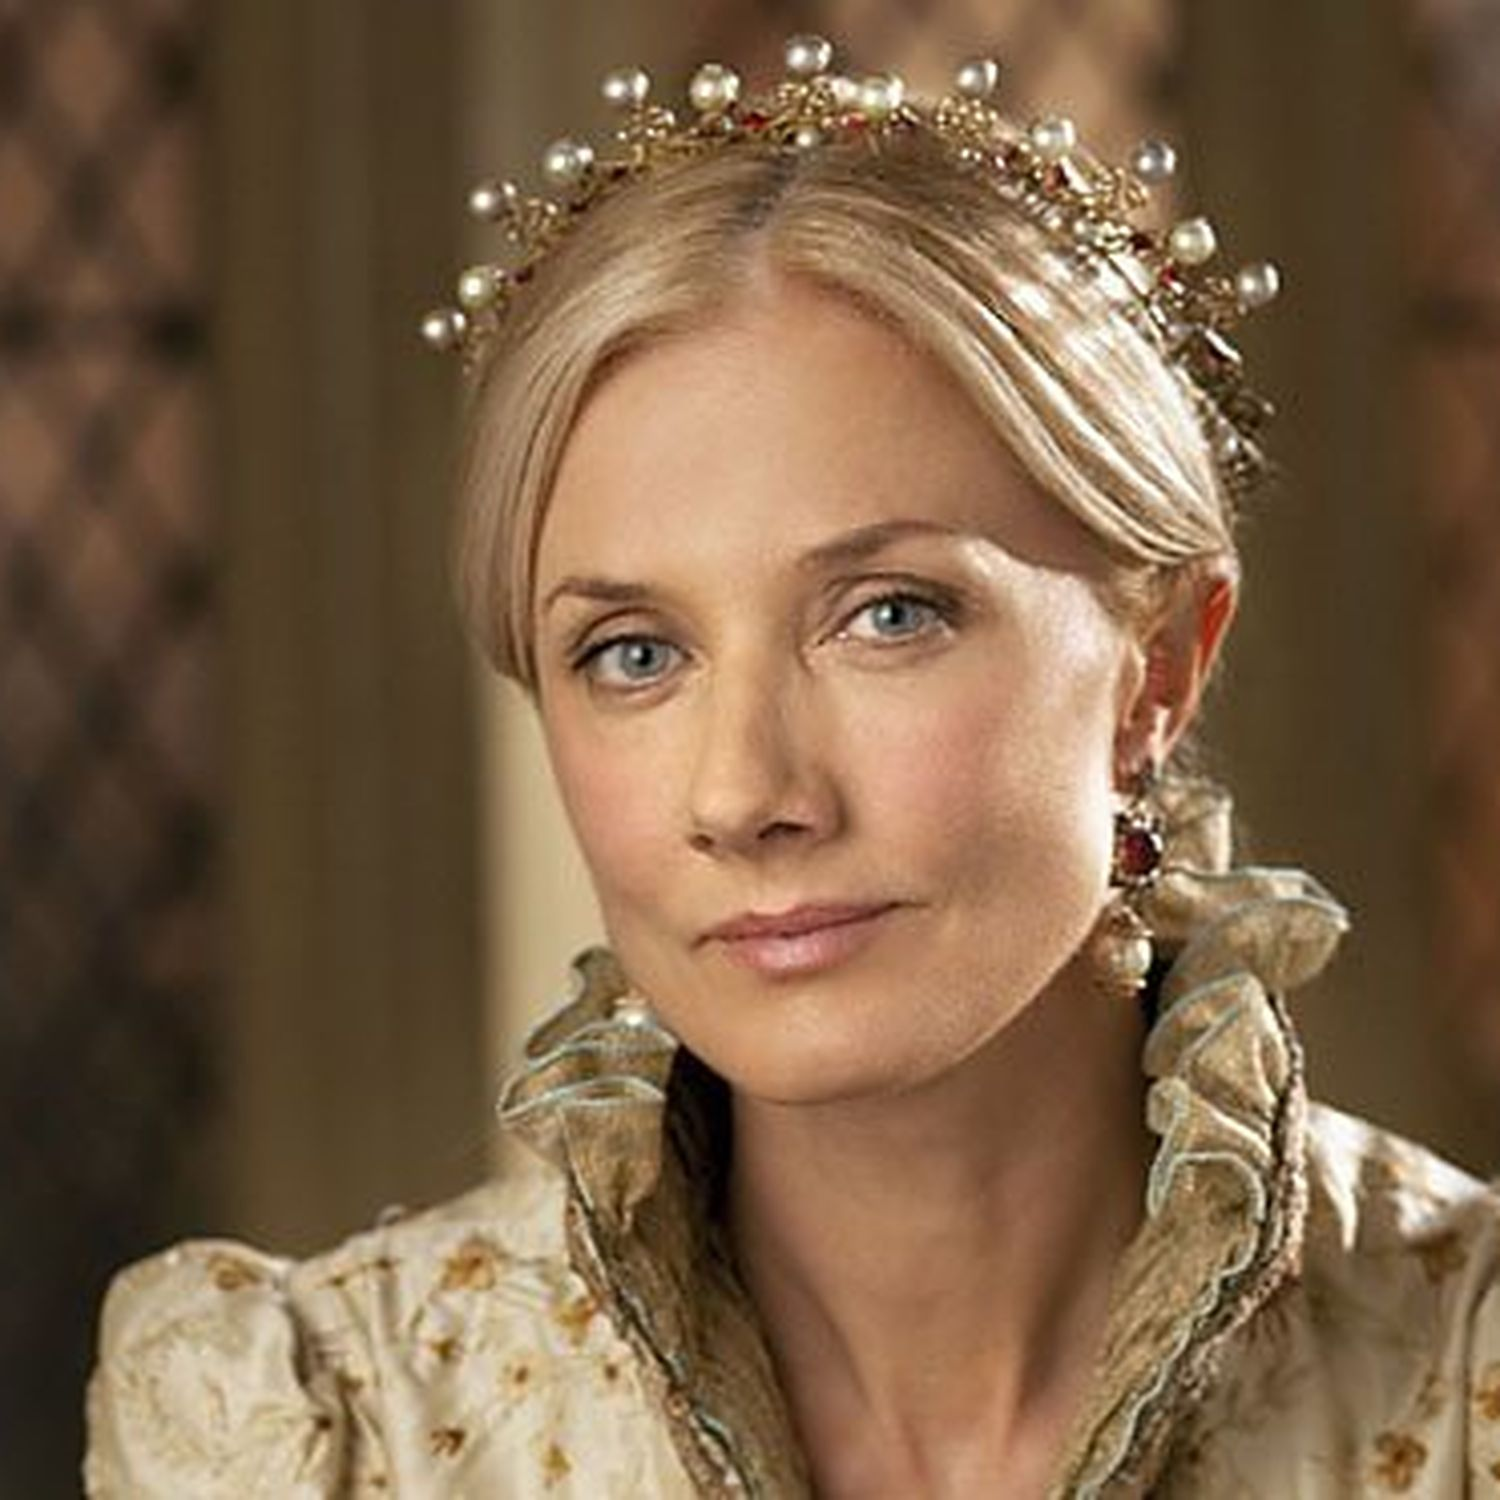 55 - Katherine Parr (3): The Wife of Moses